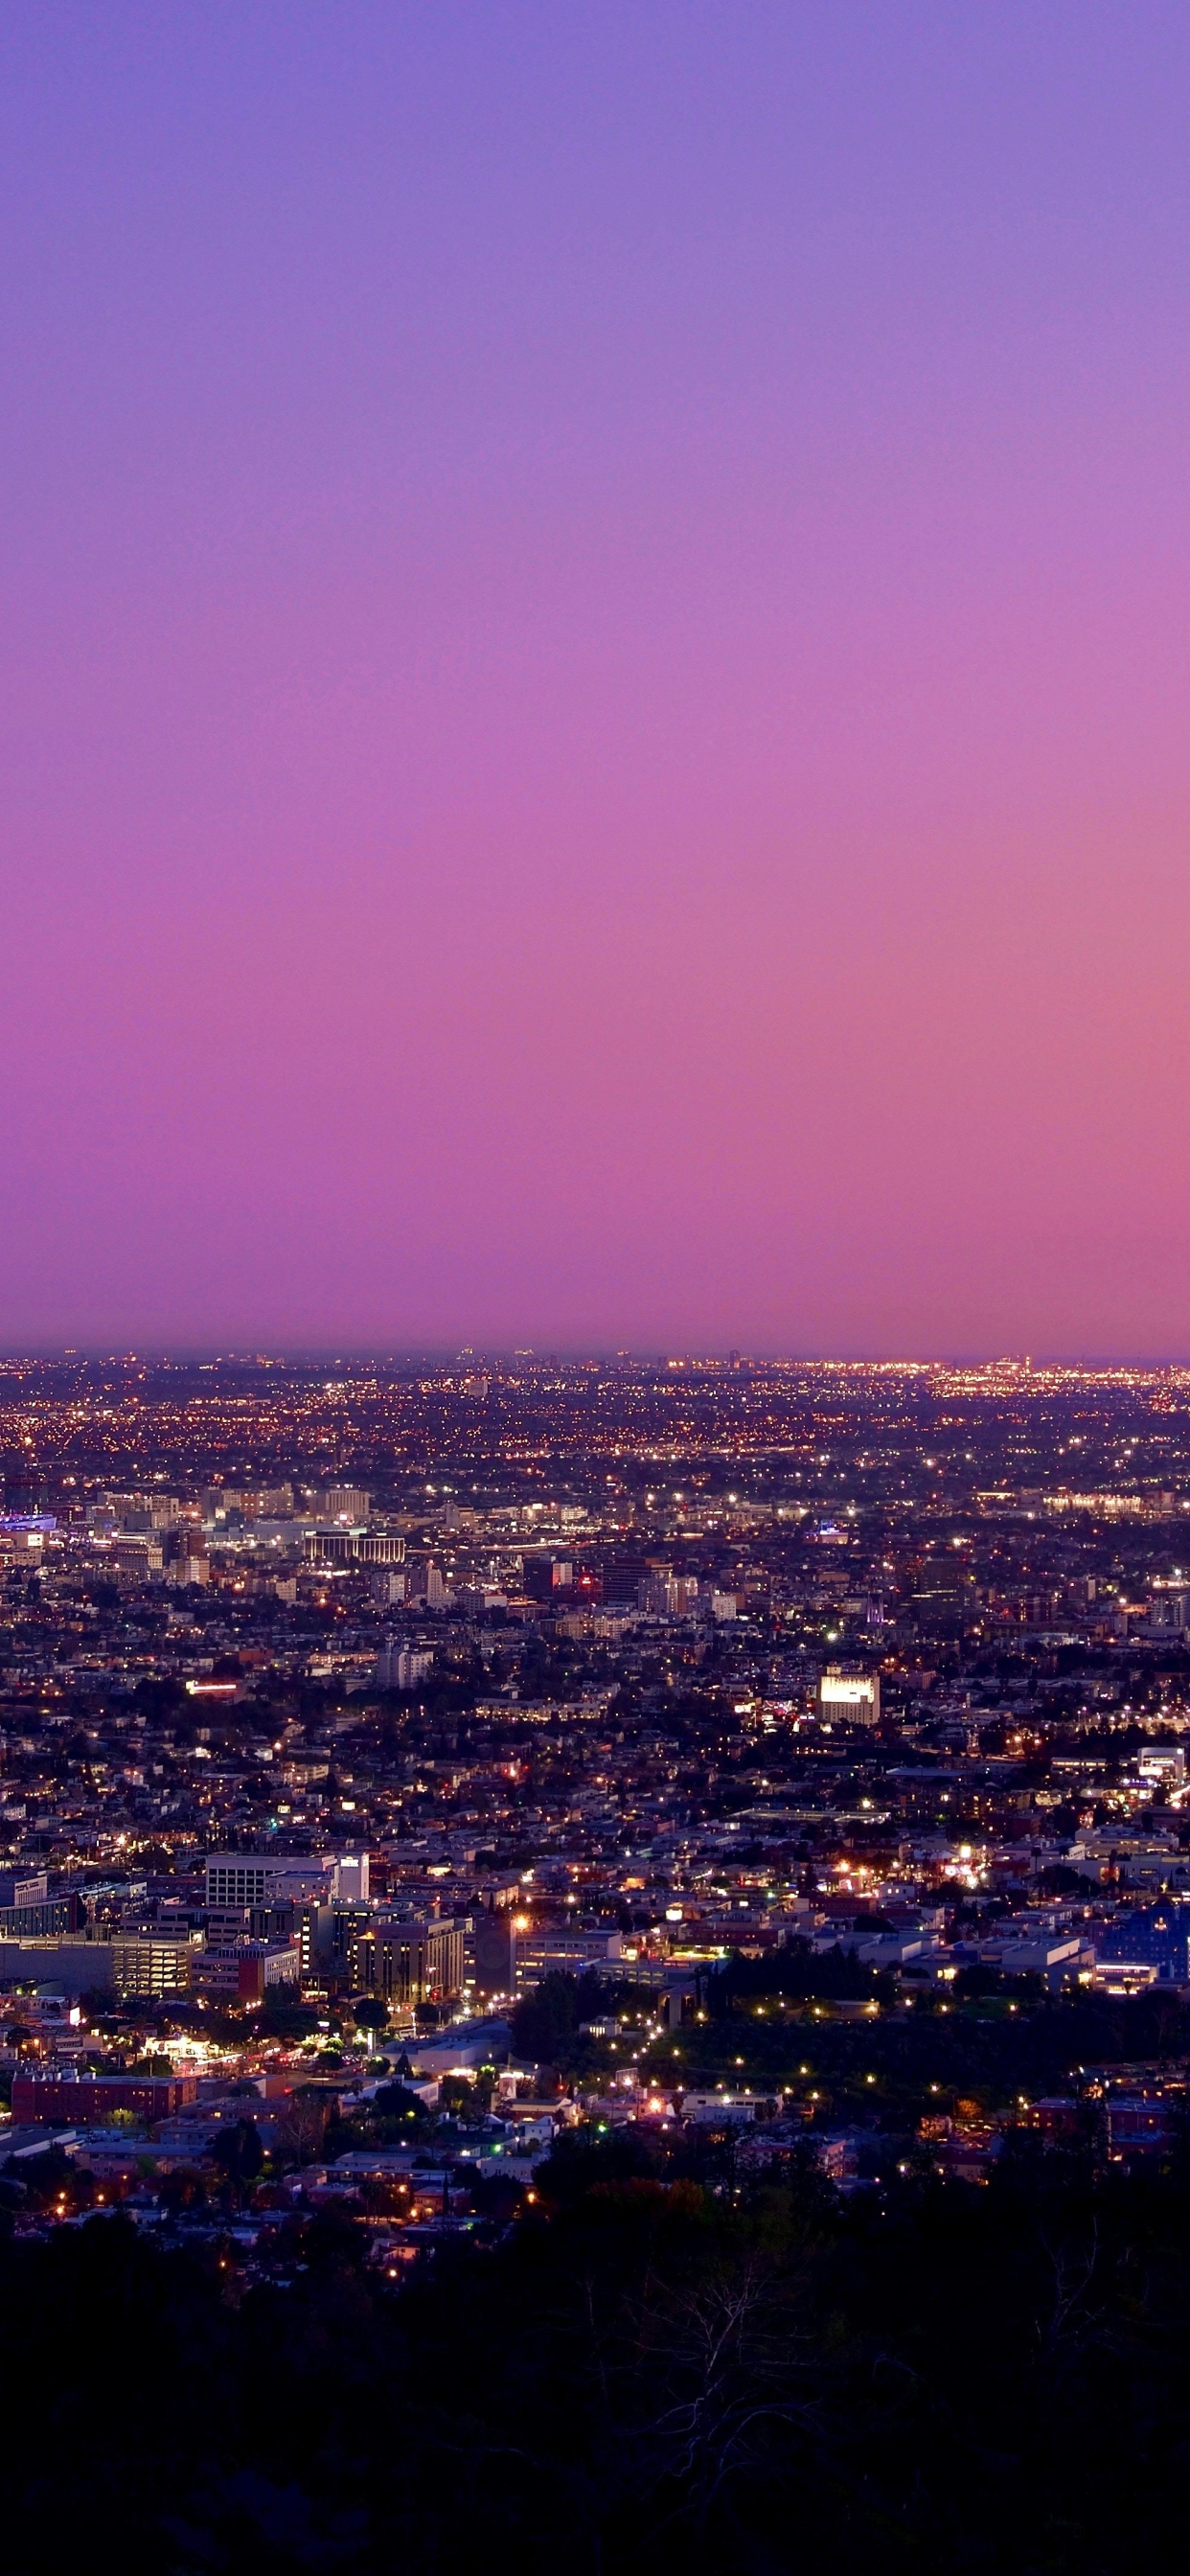 1242x2688 Los Angeles At Night Pink Sky Iphone Xs Max Wallpaper Hd City 4k Wallpapers Images Photos And Background